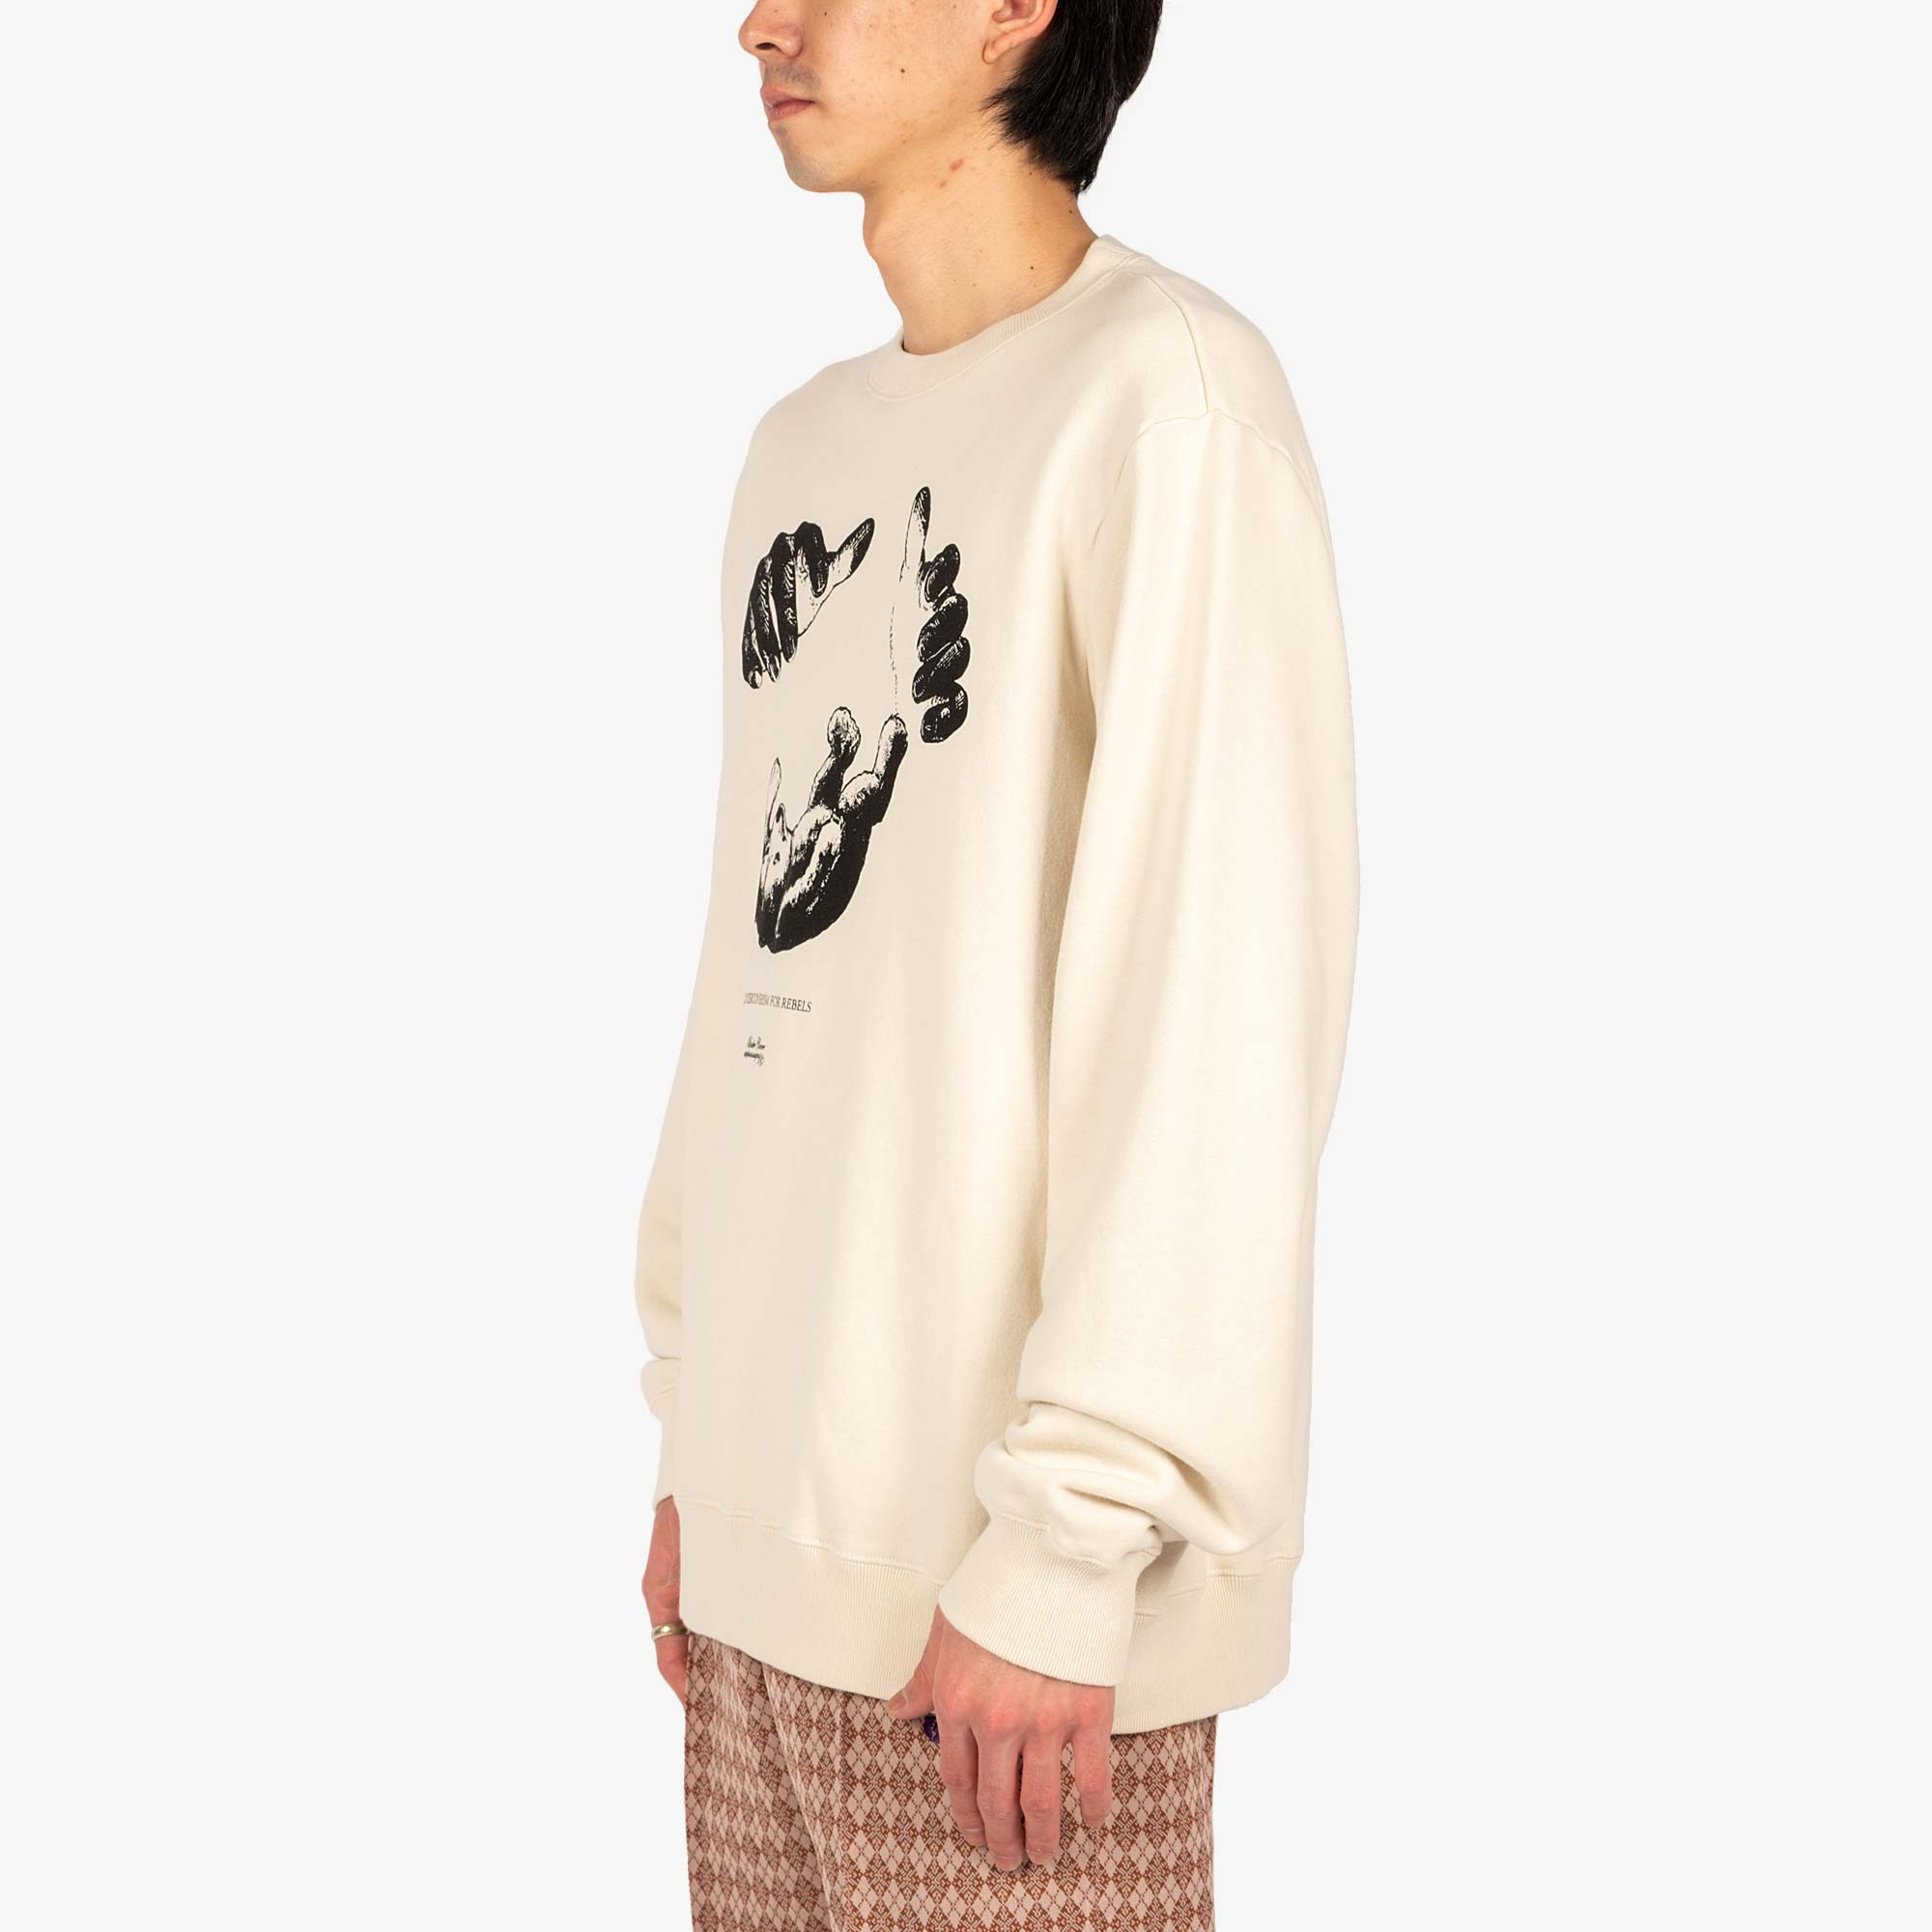 Undercover Teddy Sweat UC2A4893-6 - Ivory 4